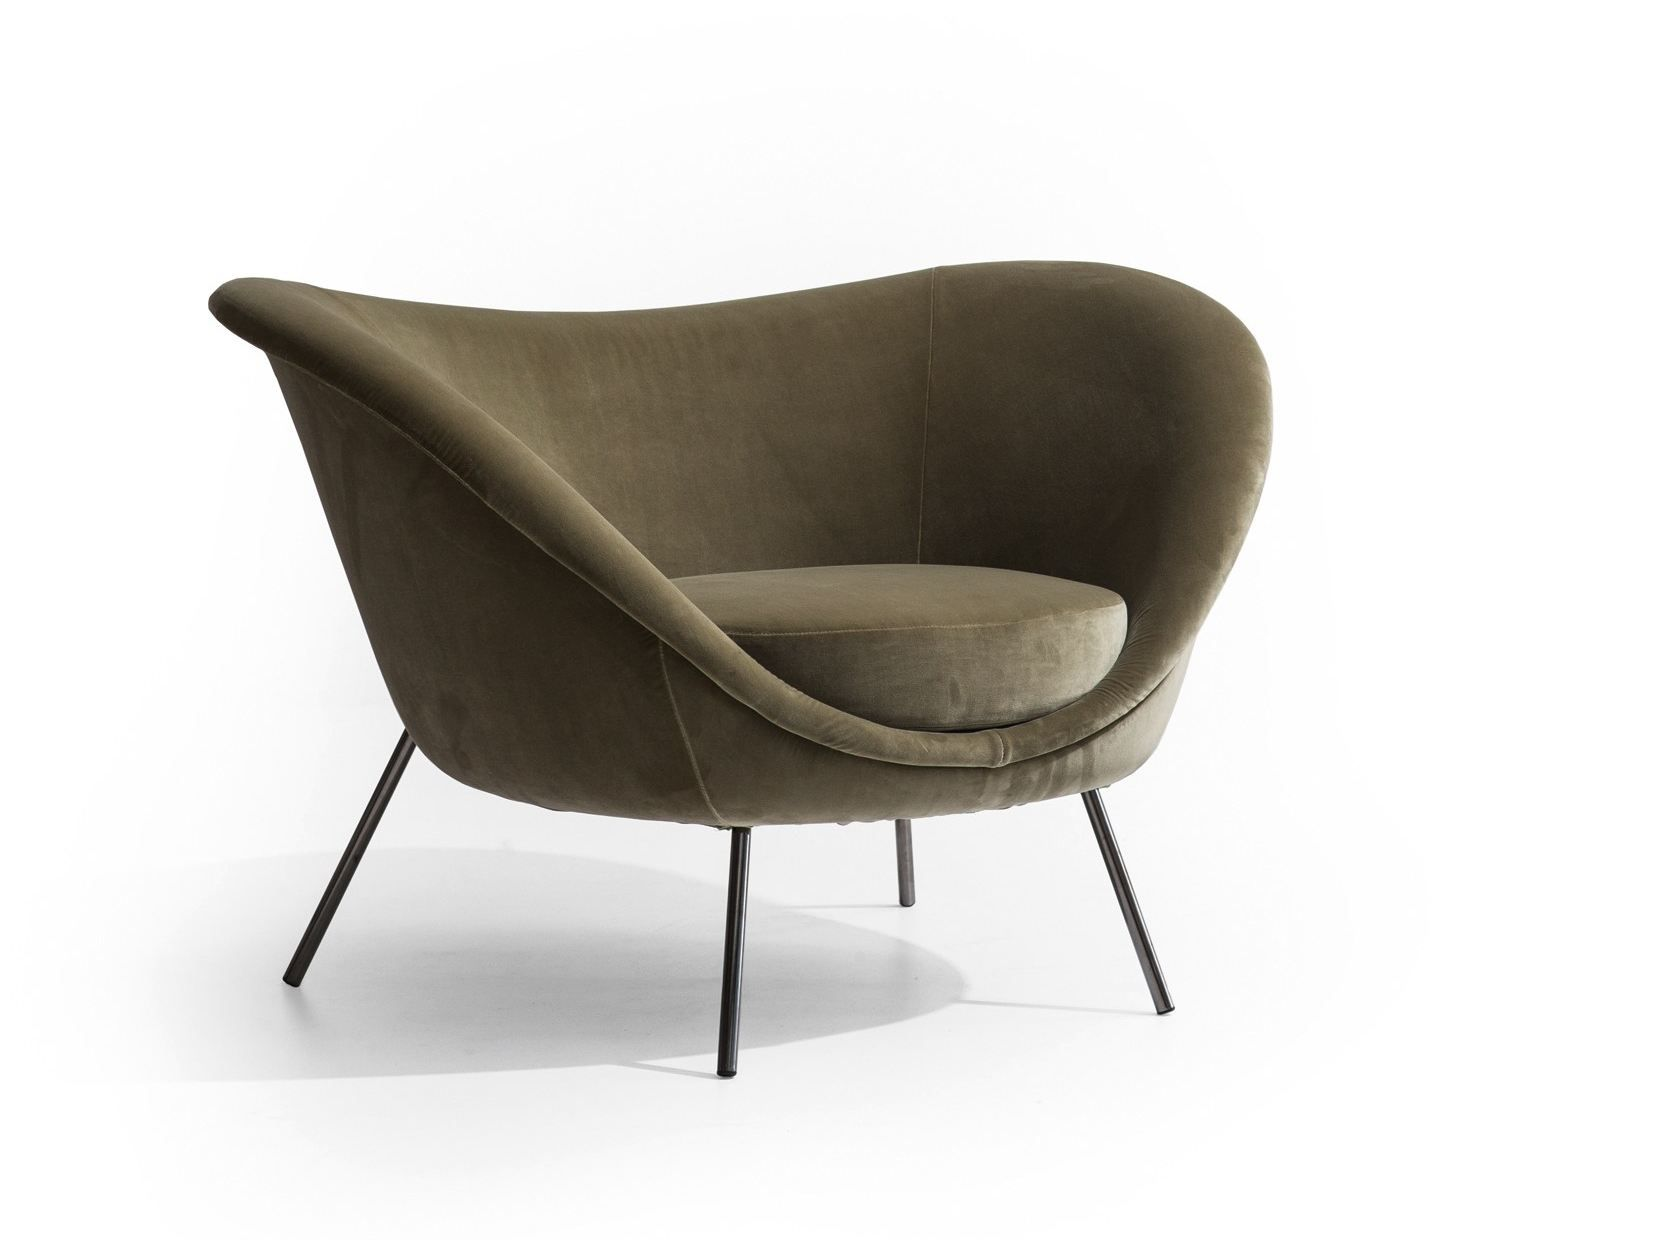 Sessel schlafzimmer ~ D sessel by molteni c design gio ponti furniture